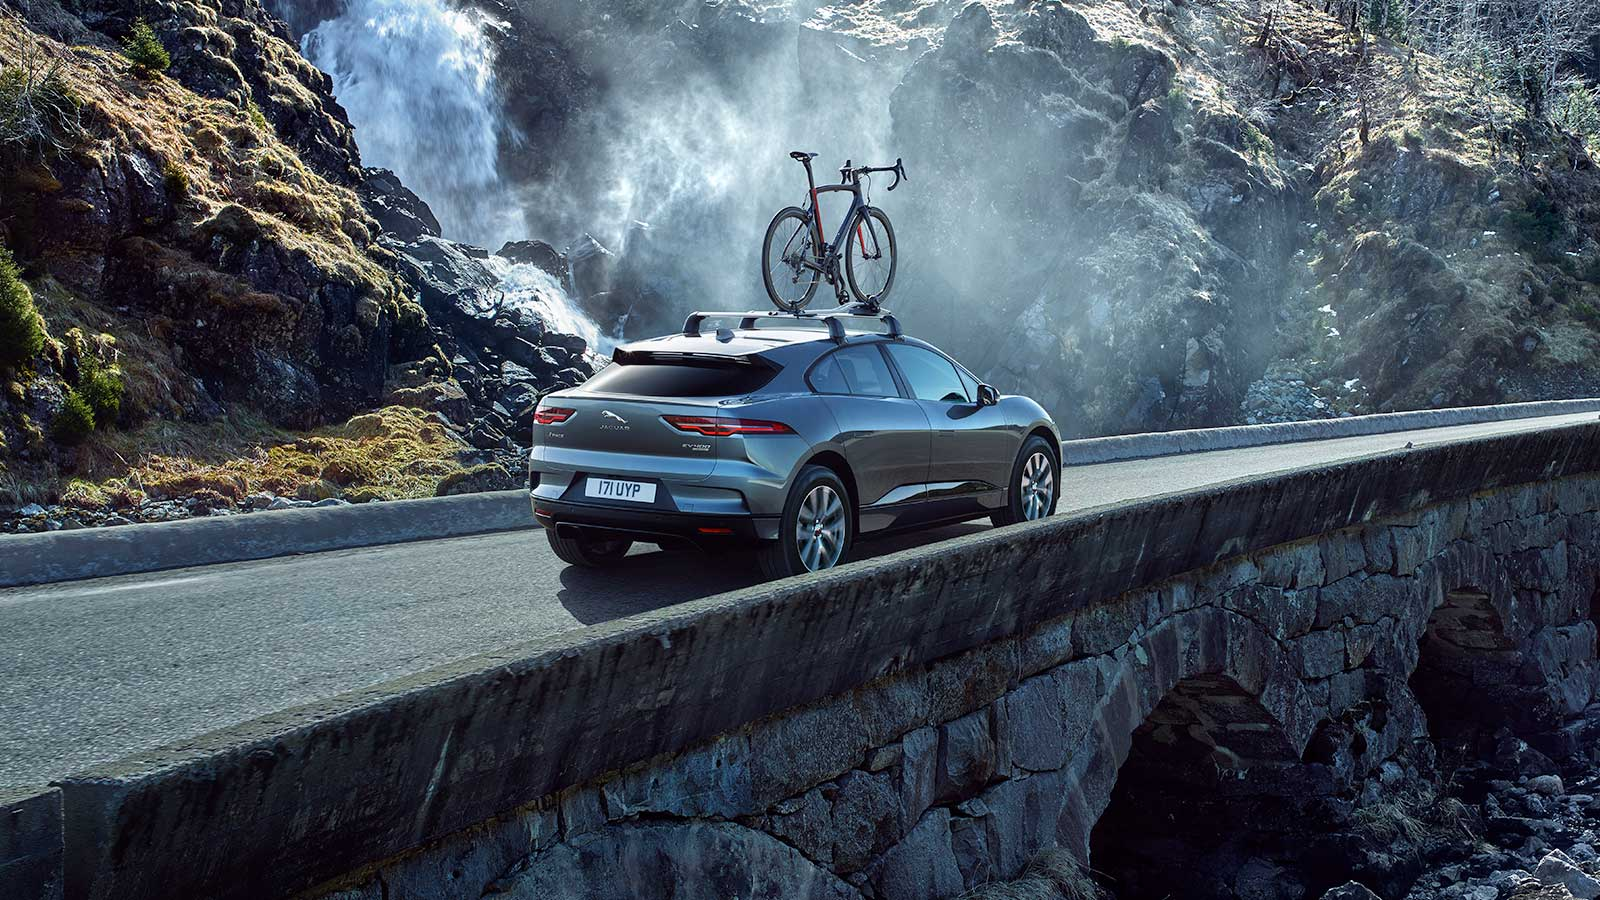 Jaguar I-PACE with bicycle attachment.